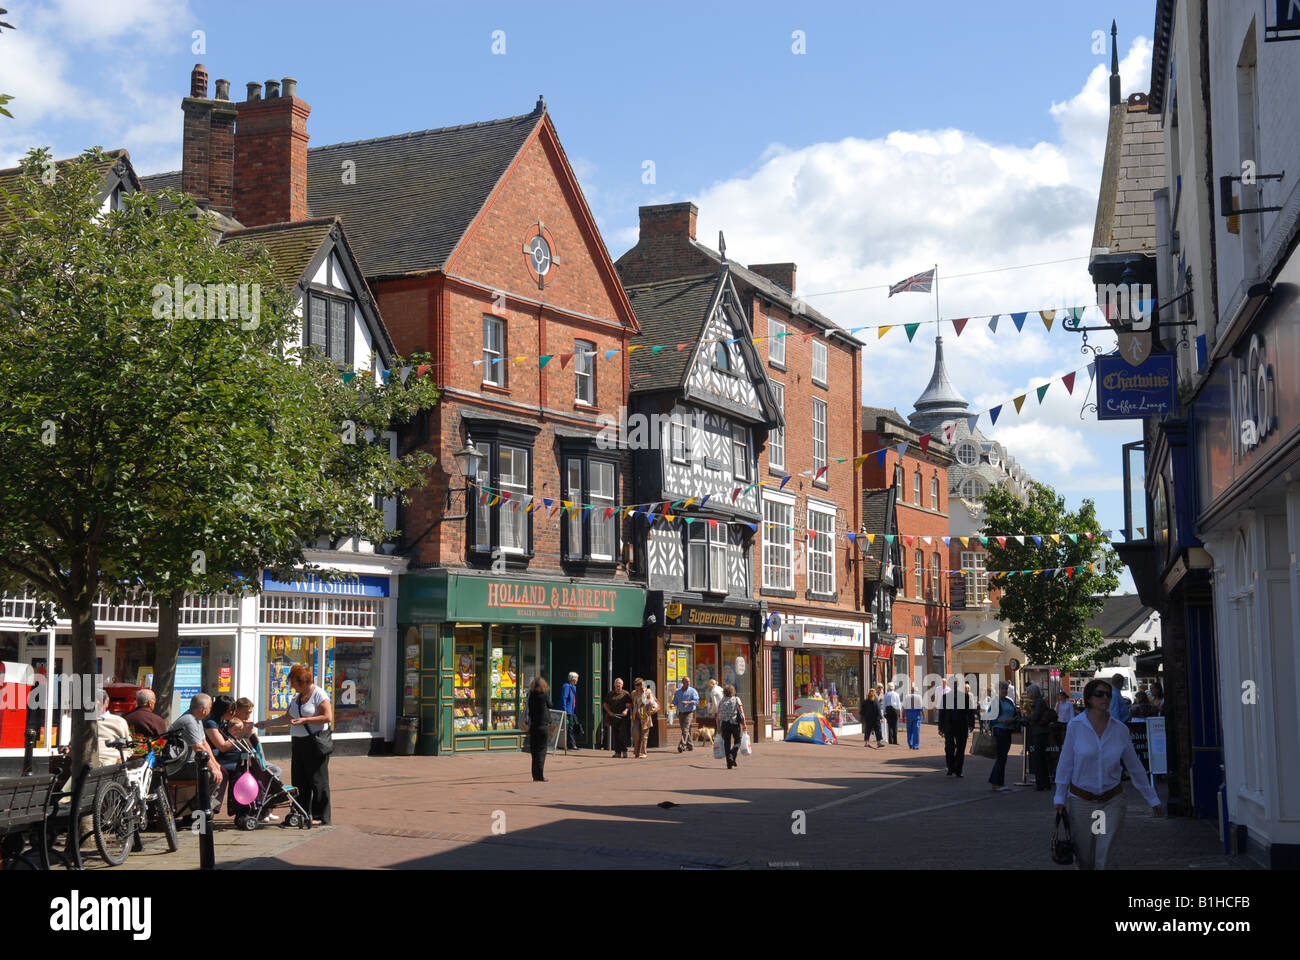 High Street in Nantwich Cheshire England - Stock Image